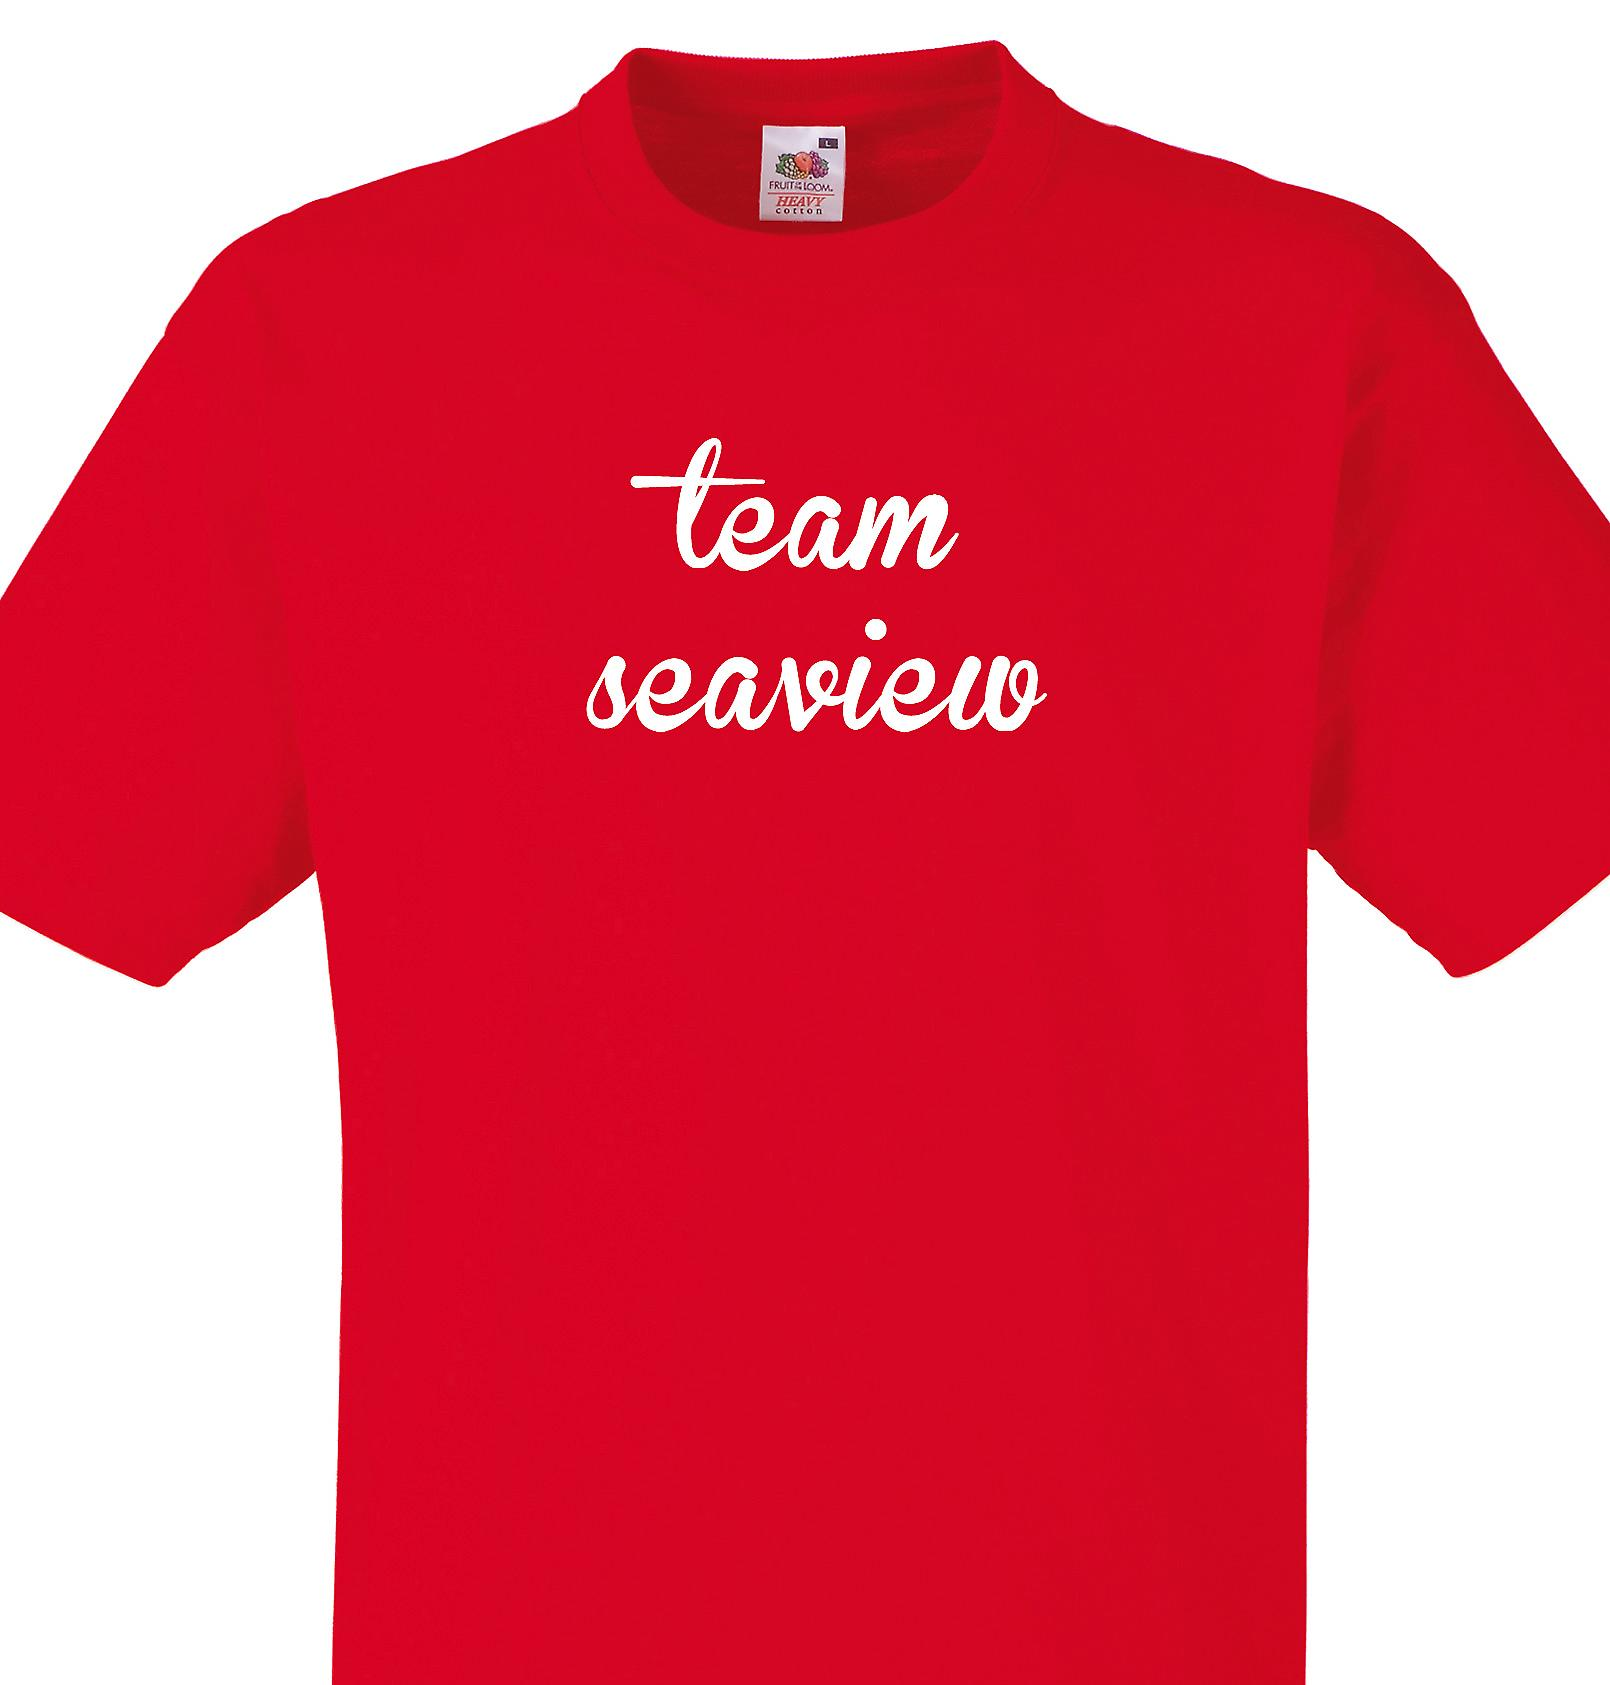 Team Seaview Red T shirt